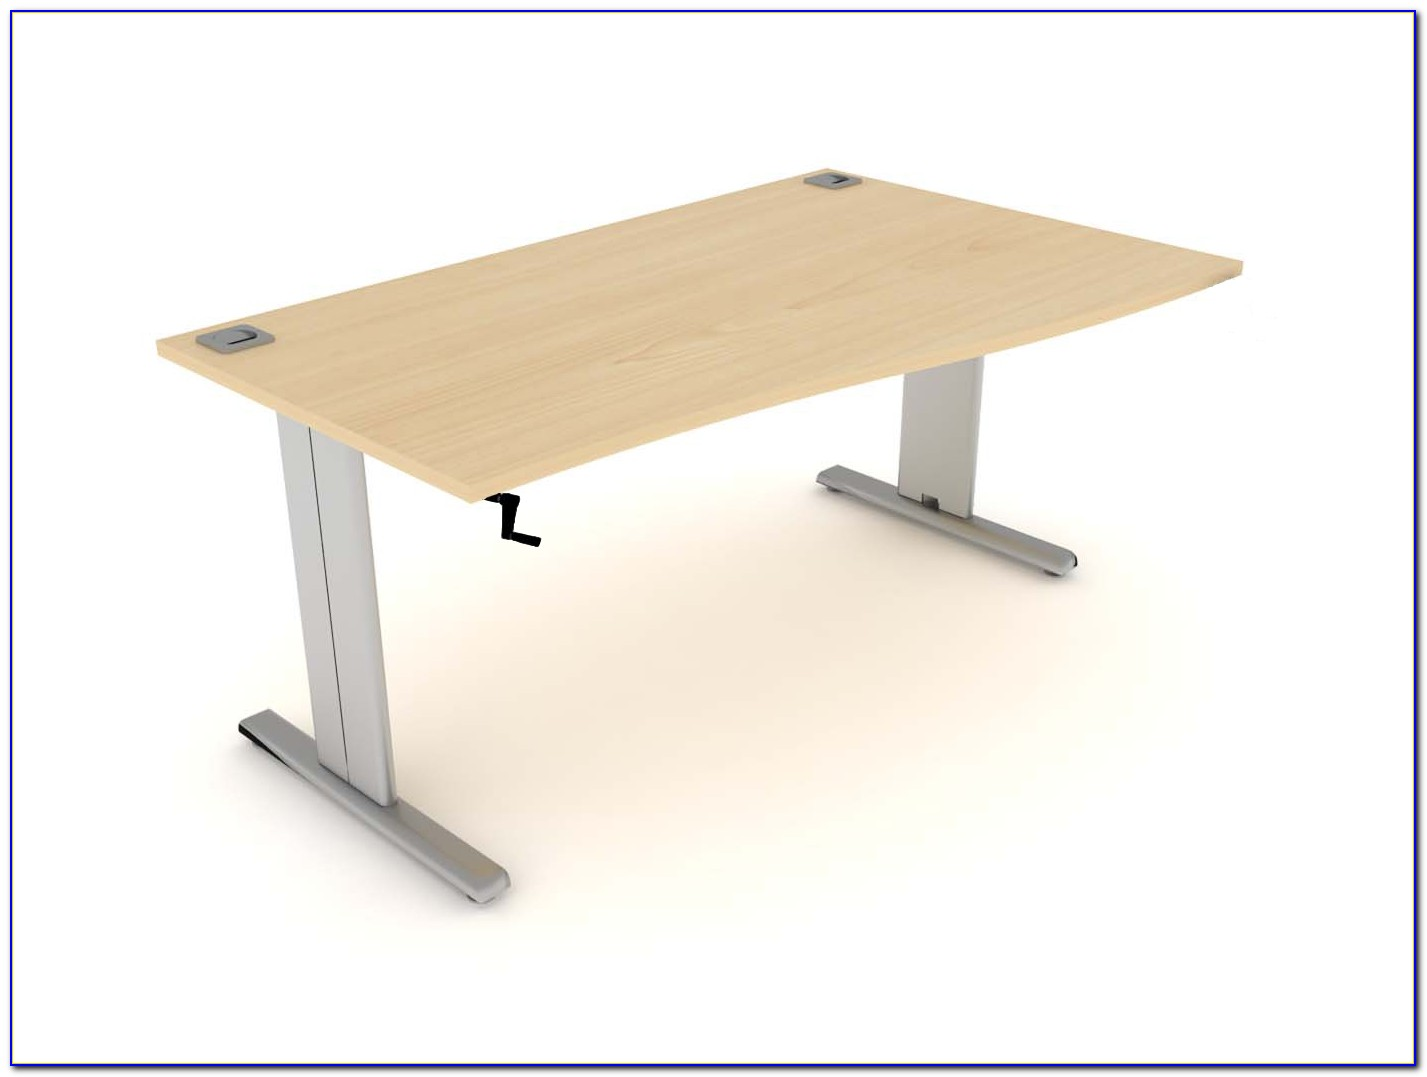 Desk With Adjustable Height Legs